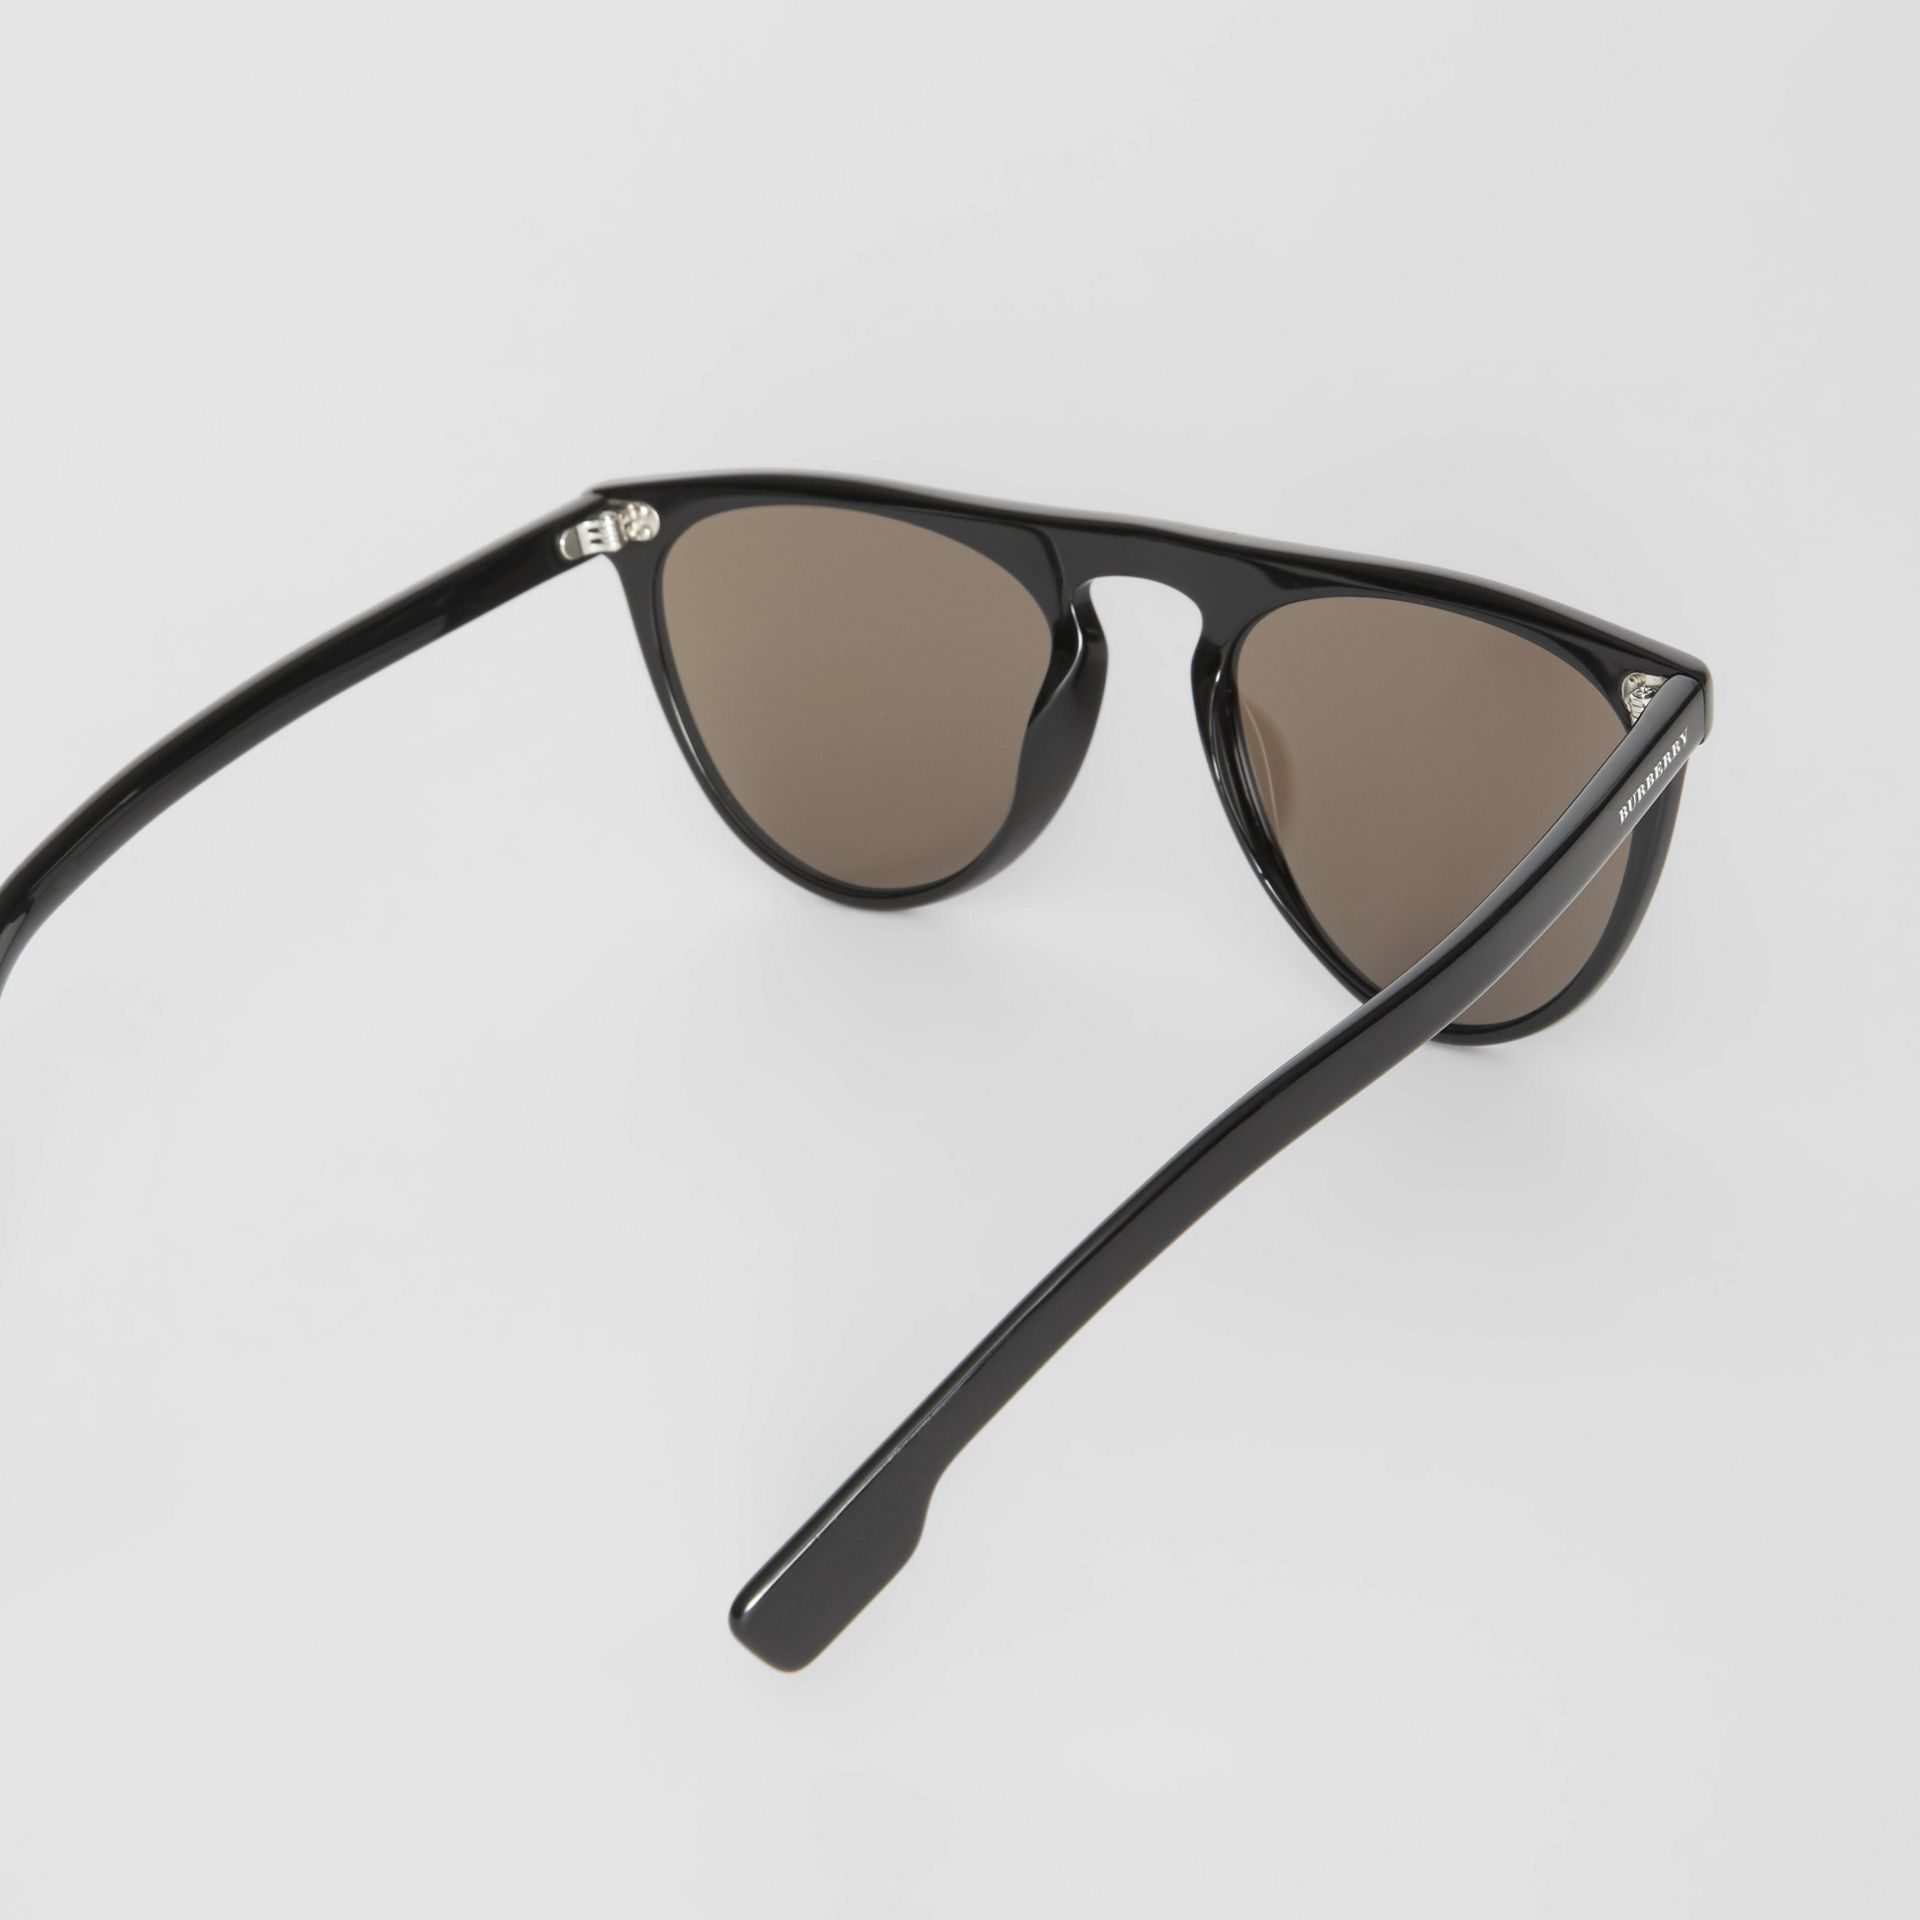 Keyhole D-shaped Sunglasses in Black - Men | Burberry United States - gallery image 4